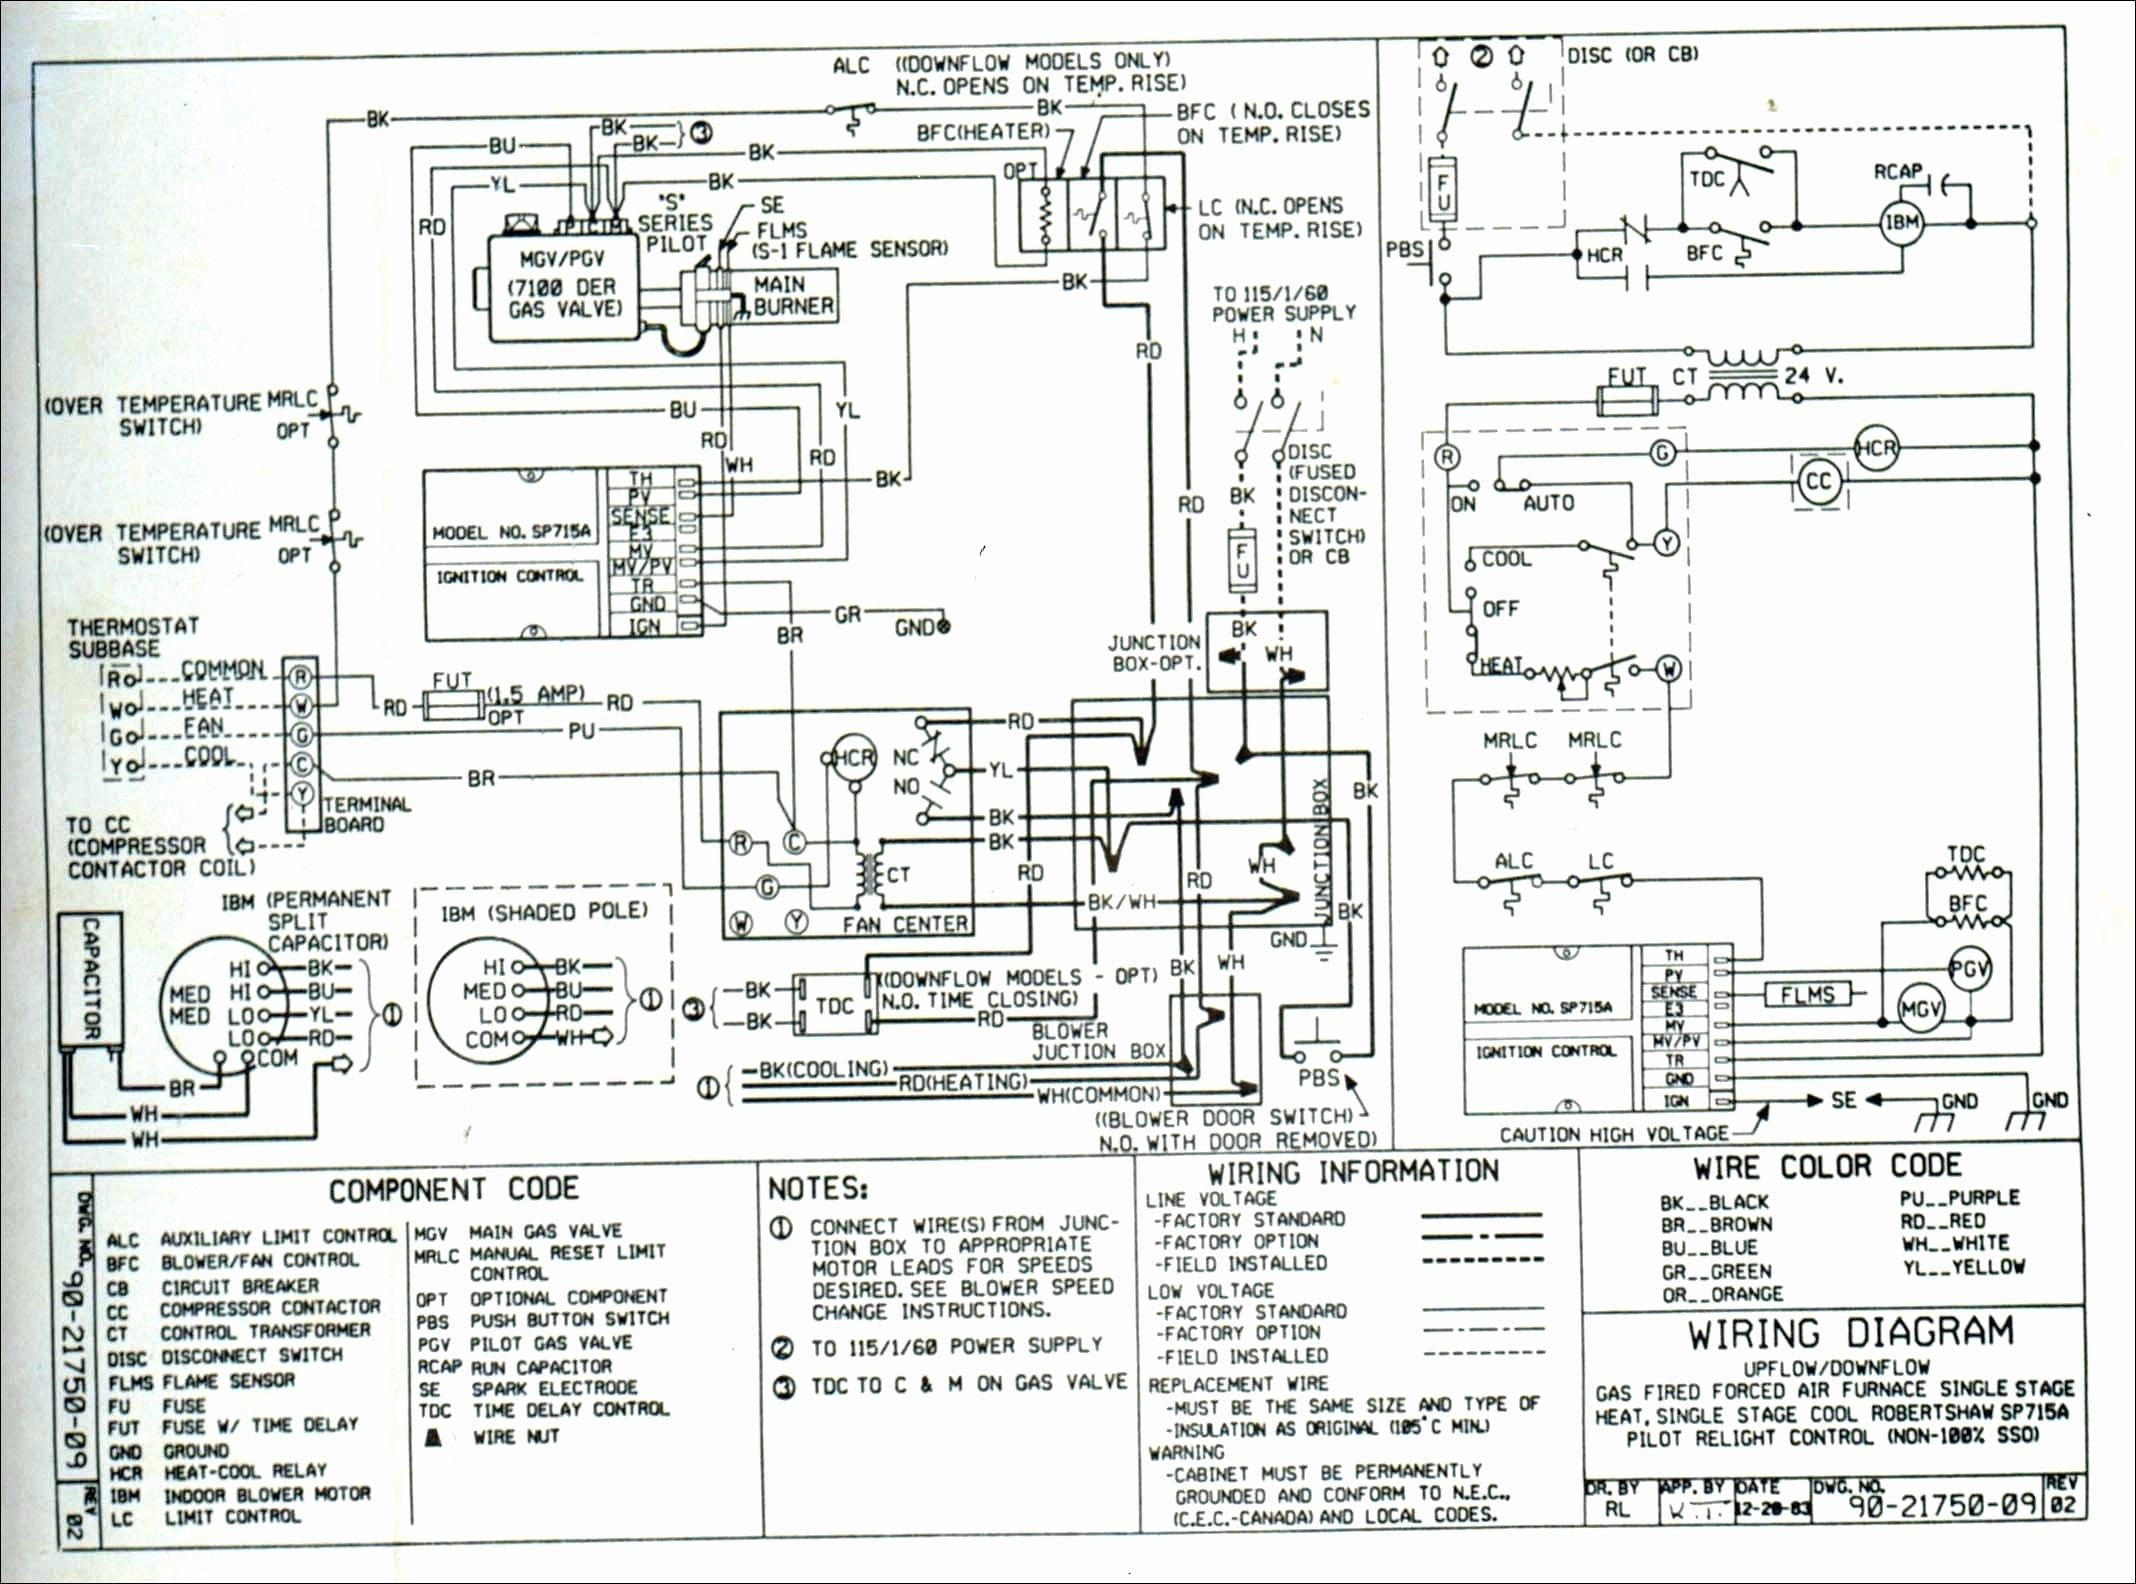 4 Pole Ats Wiring Diagram